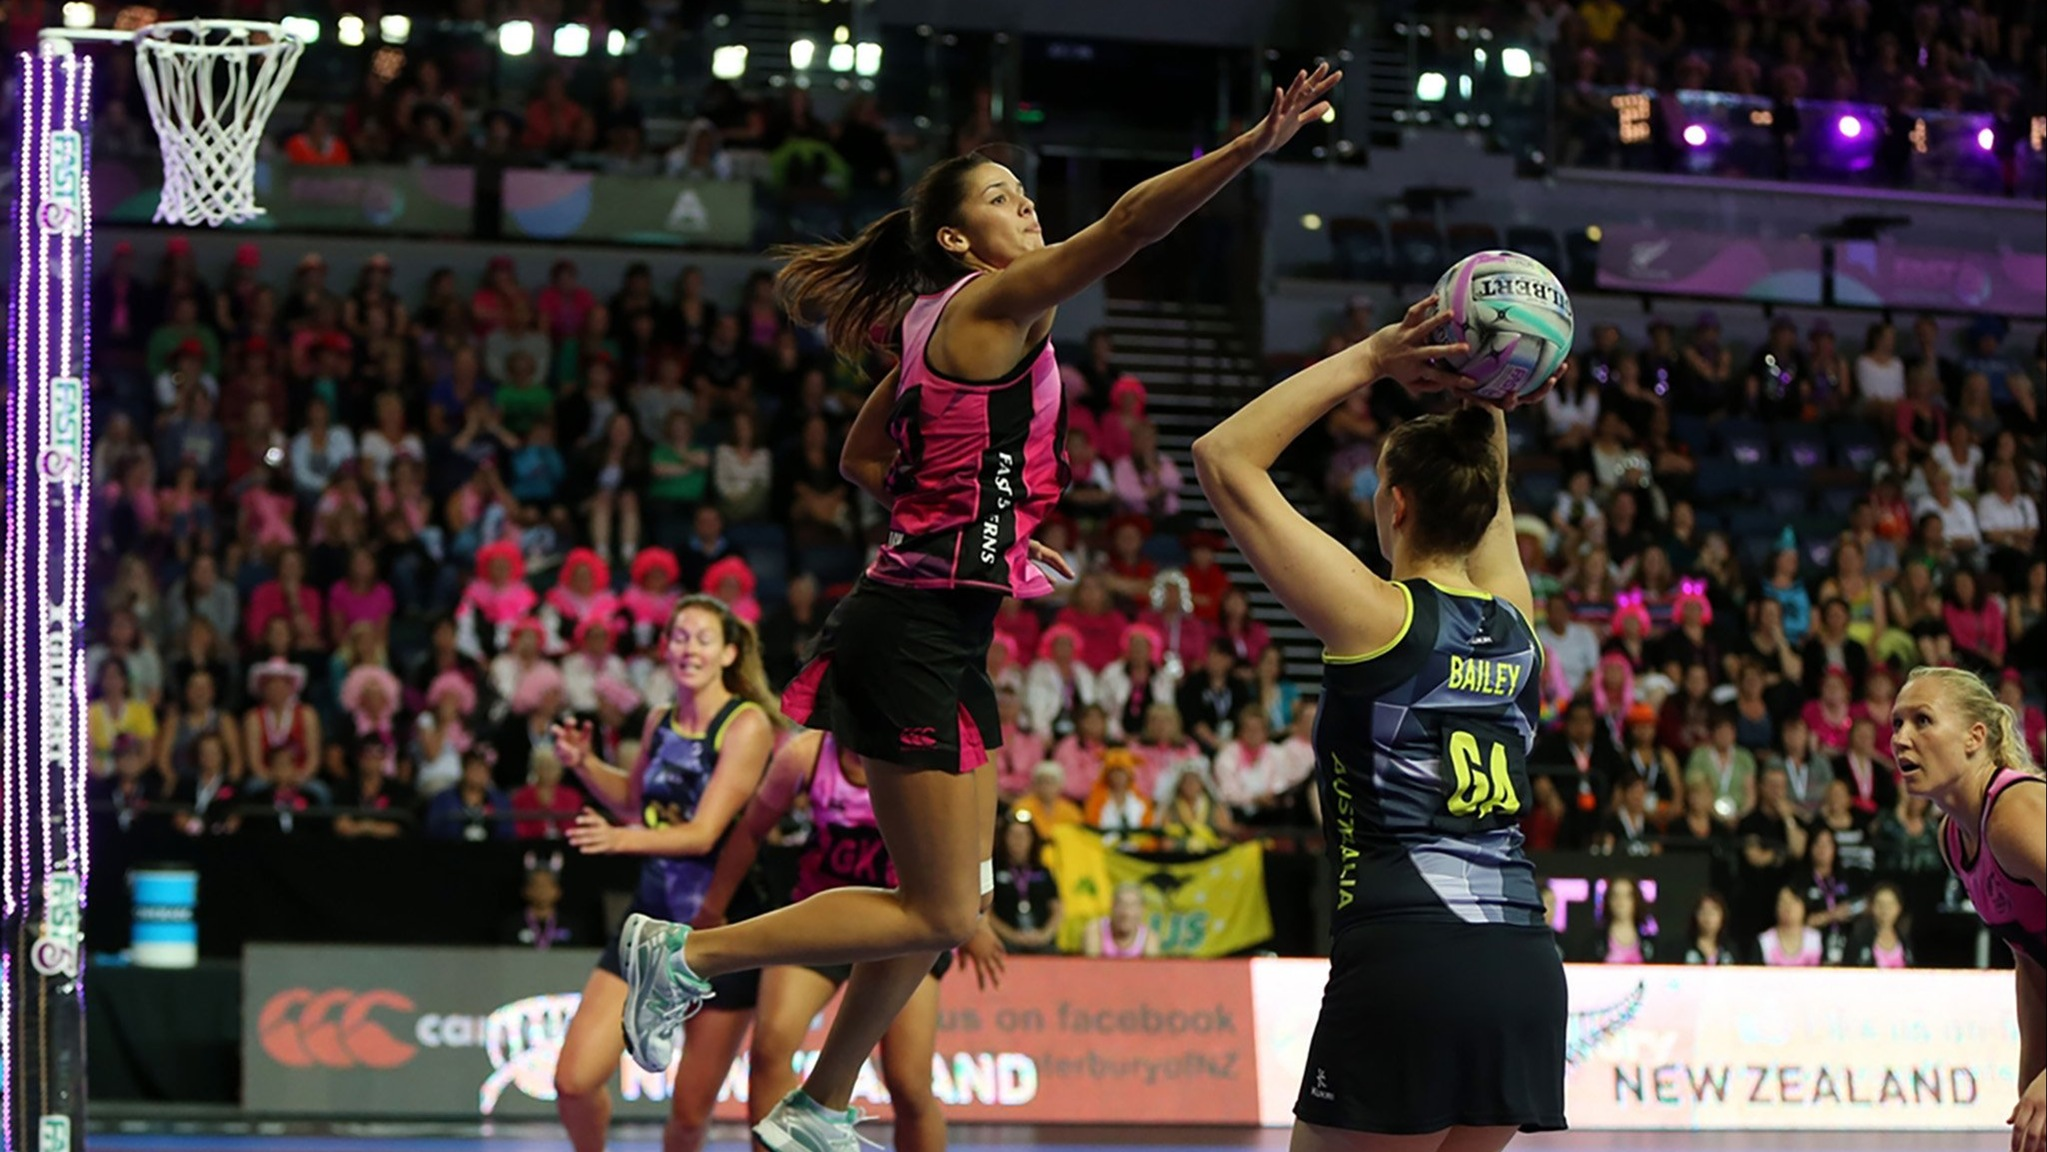 photo of a fast5 netball game